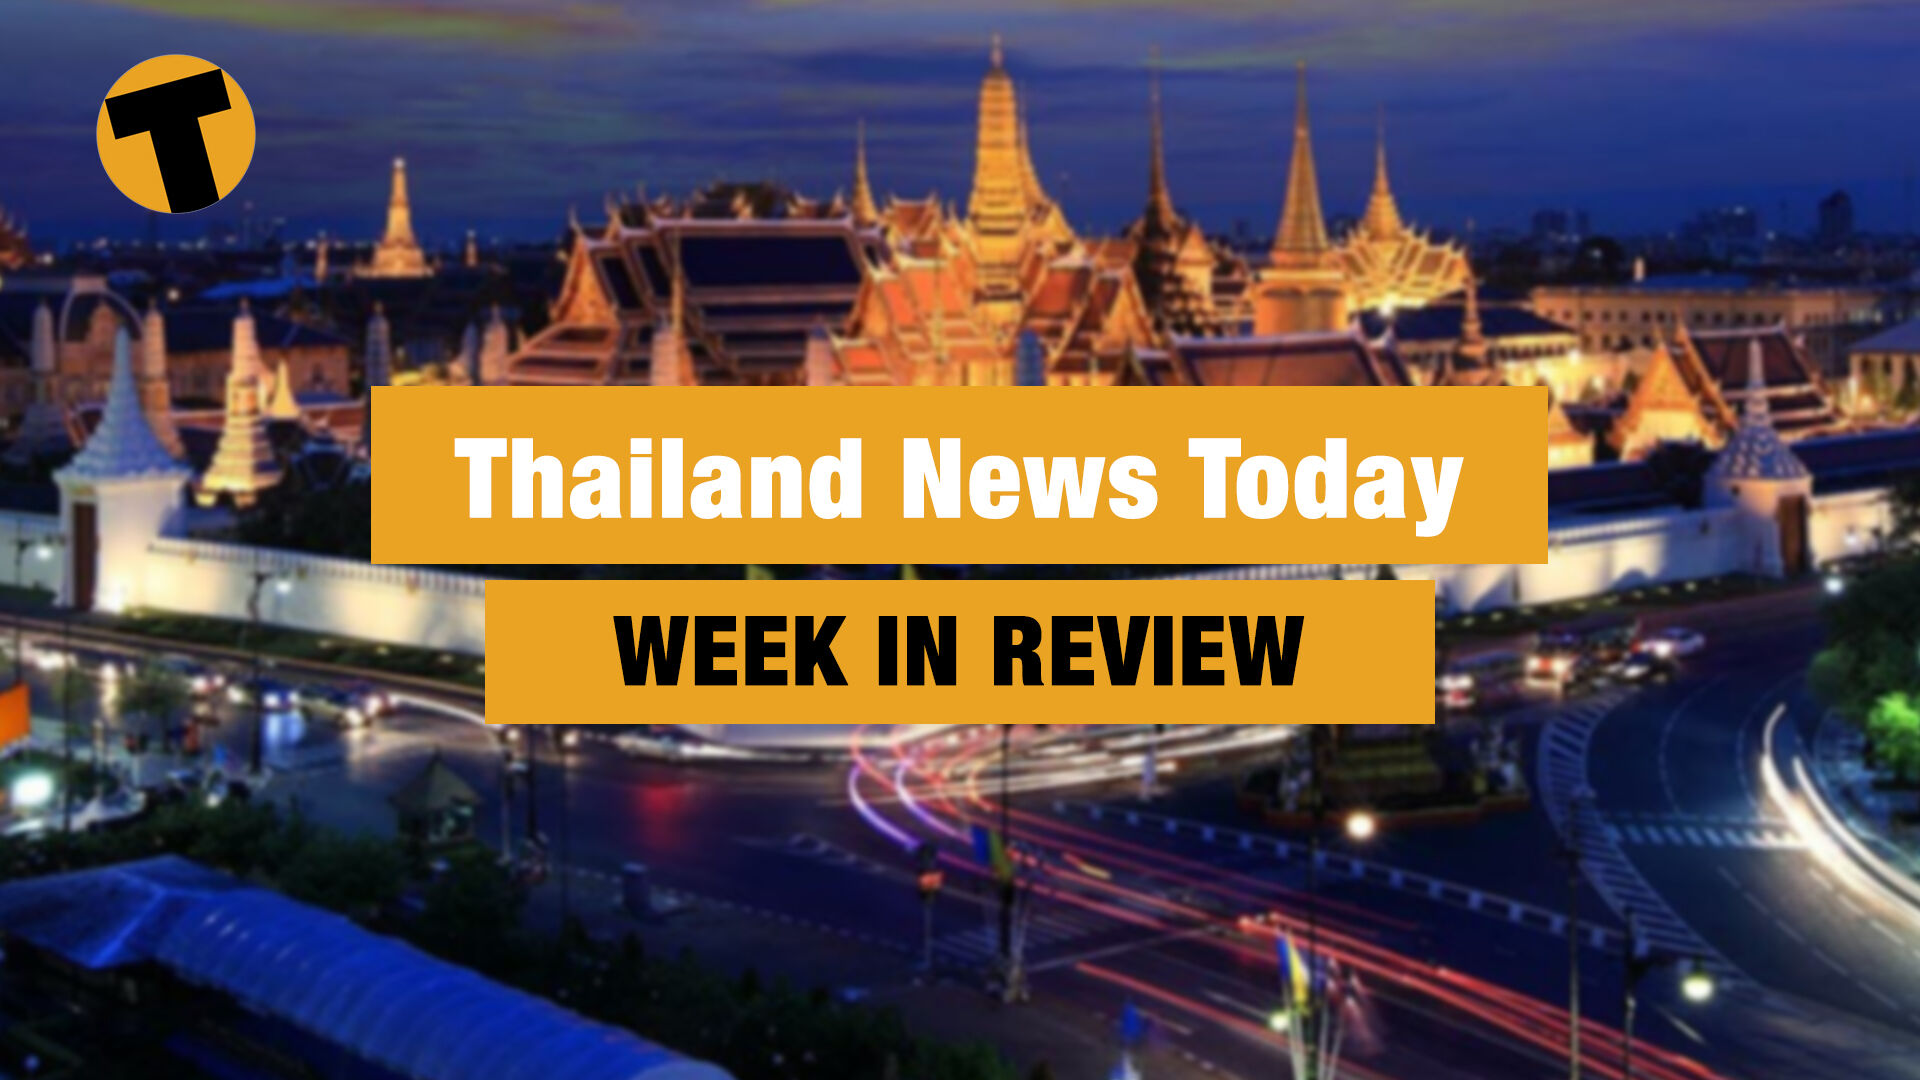 Thailand News Today – Week in review | January 30 | The Thaiger